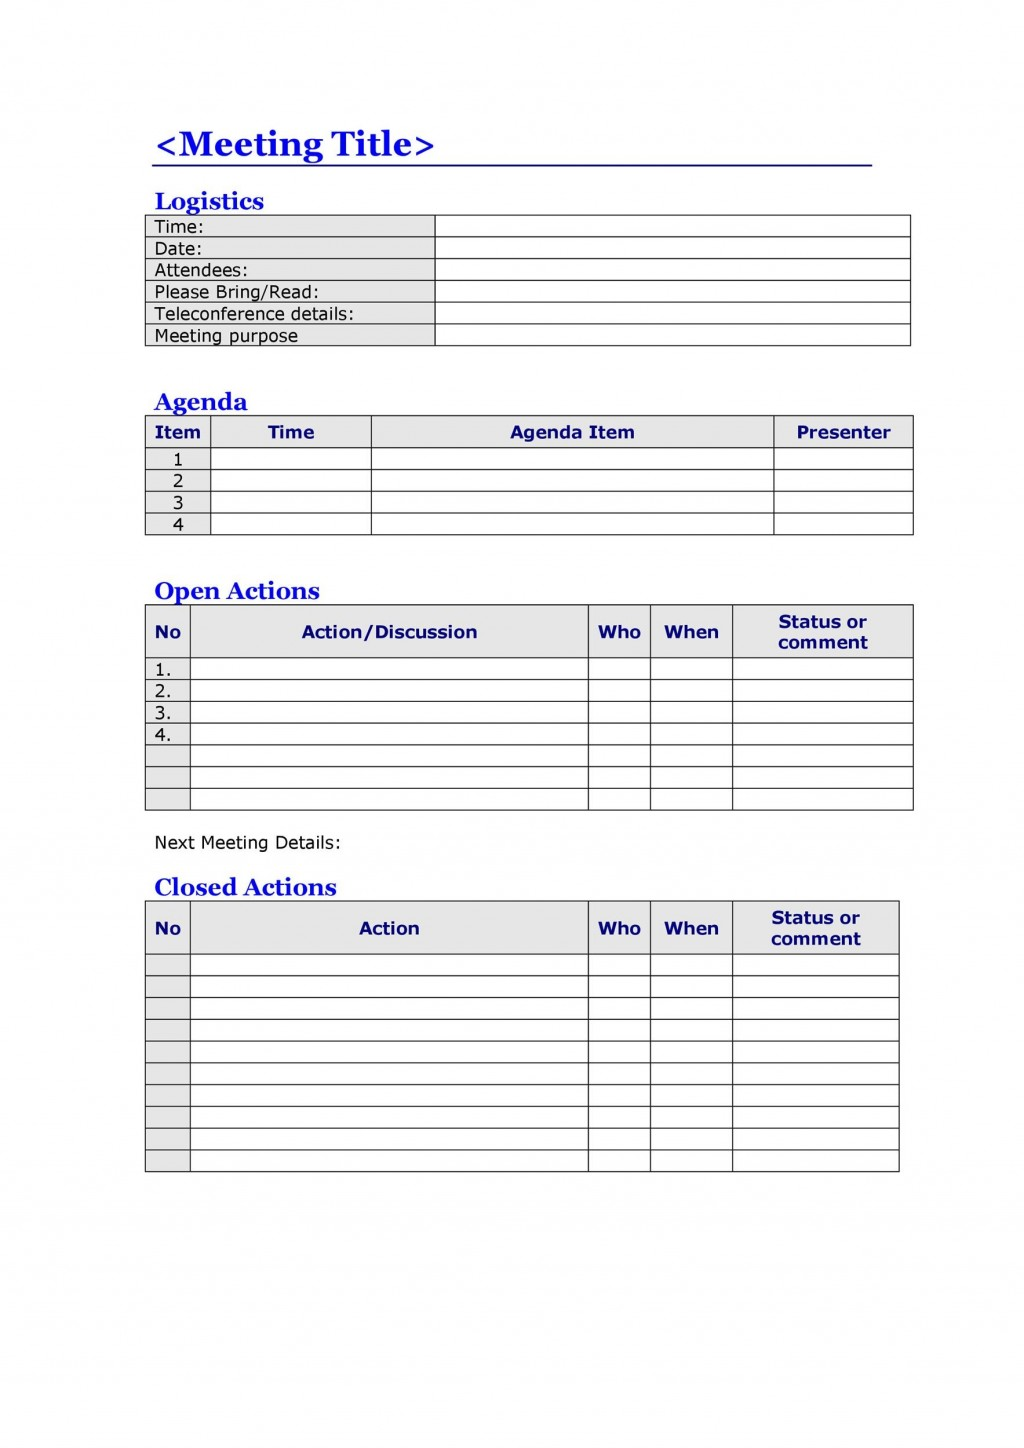 008 Top Meeting Agenda Template Word Image  Free Download DocLarge